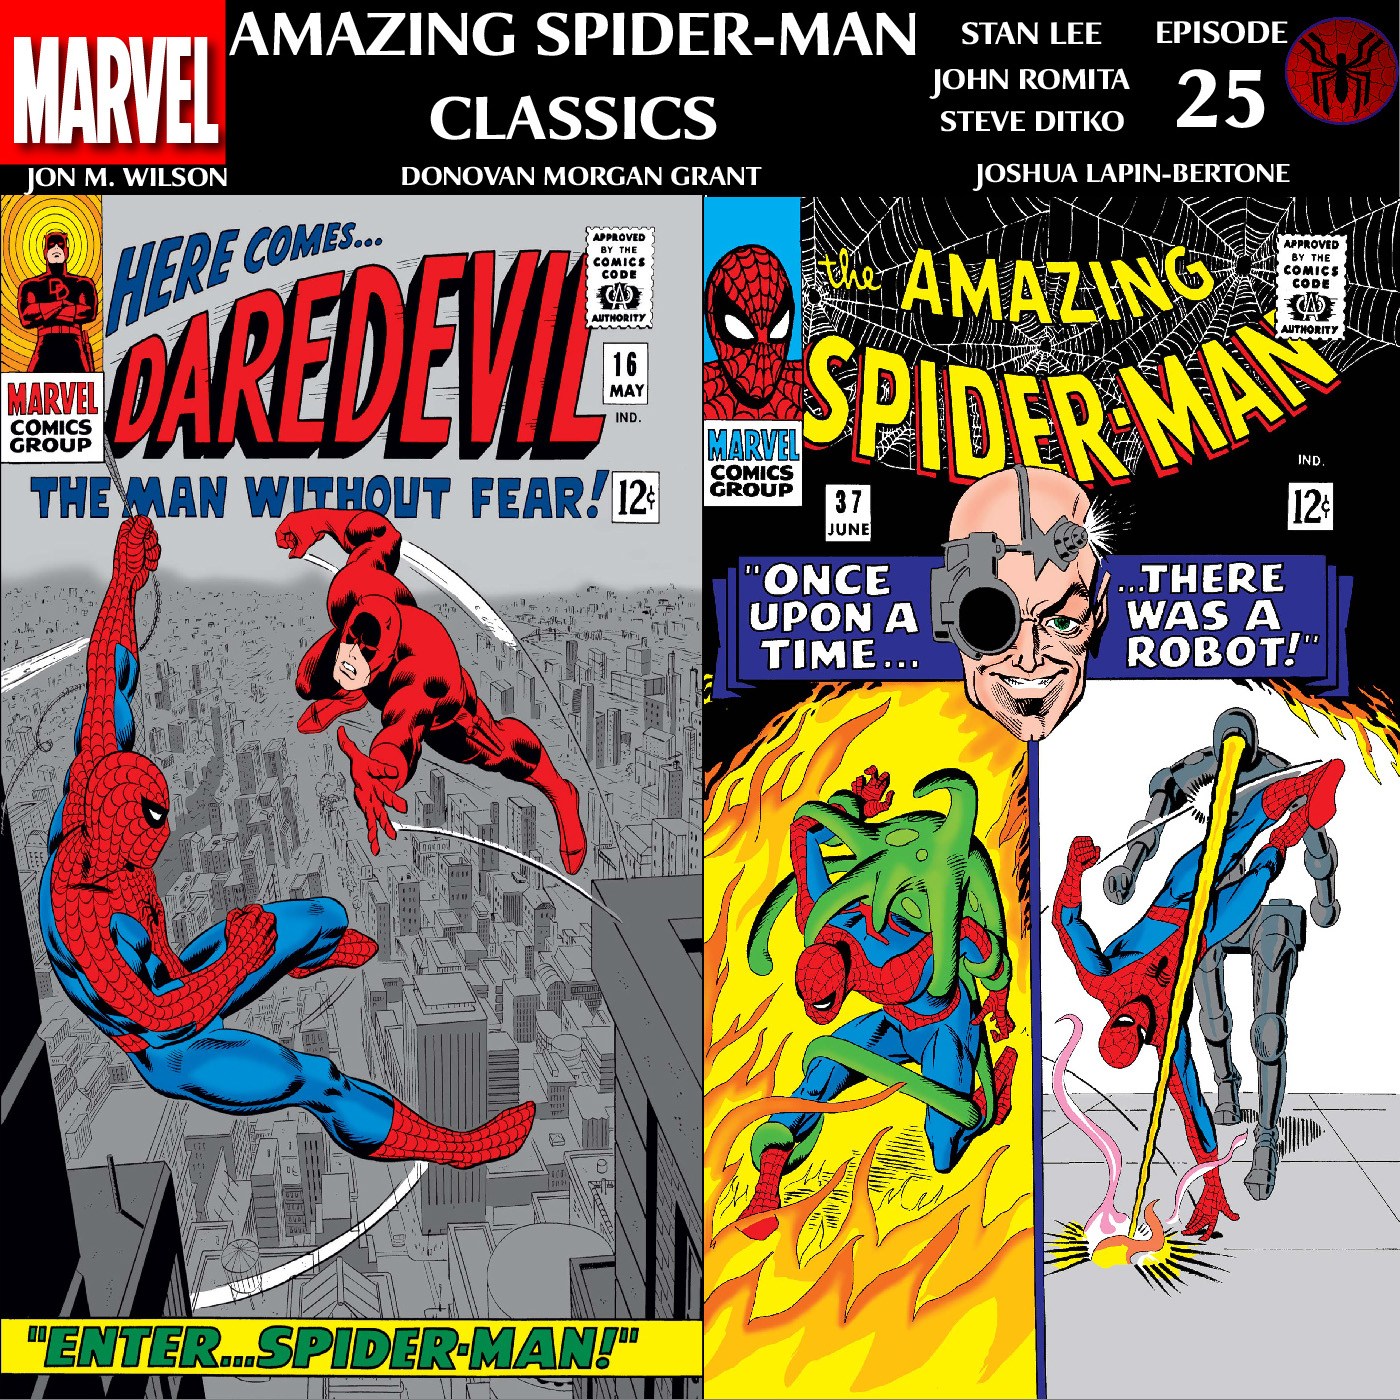 ASM Classics Episode 25: Daredevil 16 and ASM 37